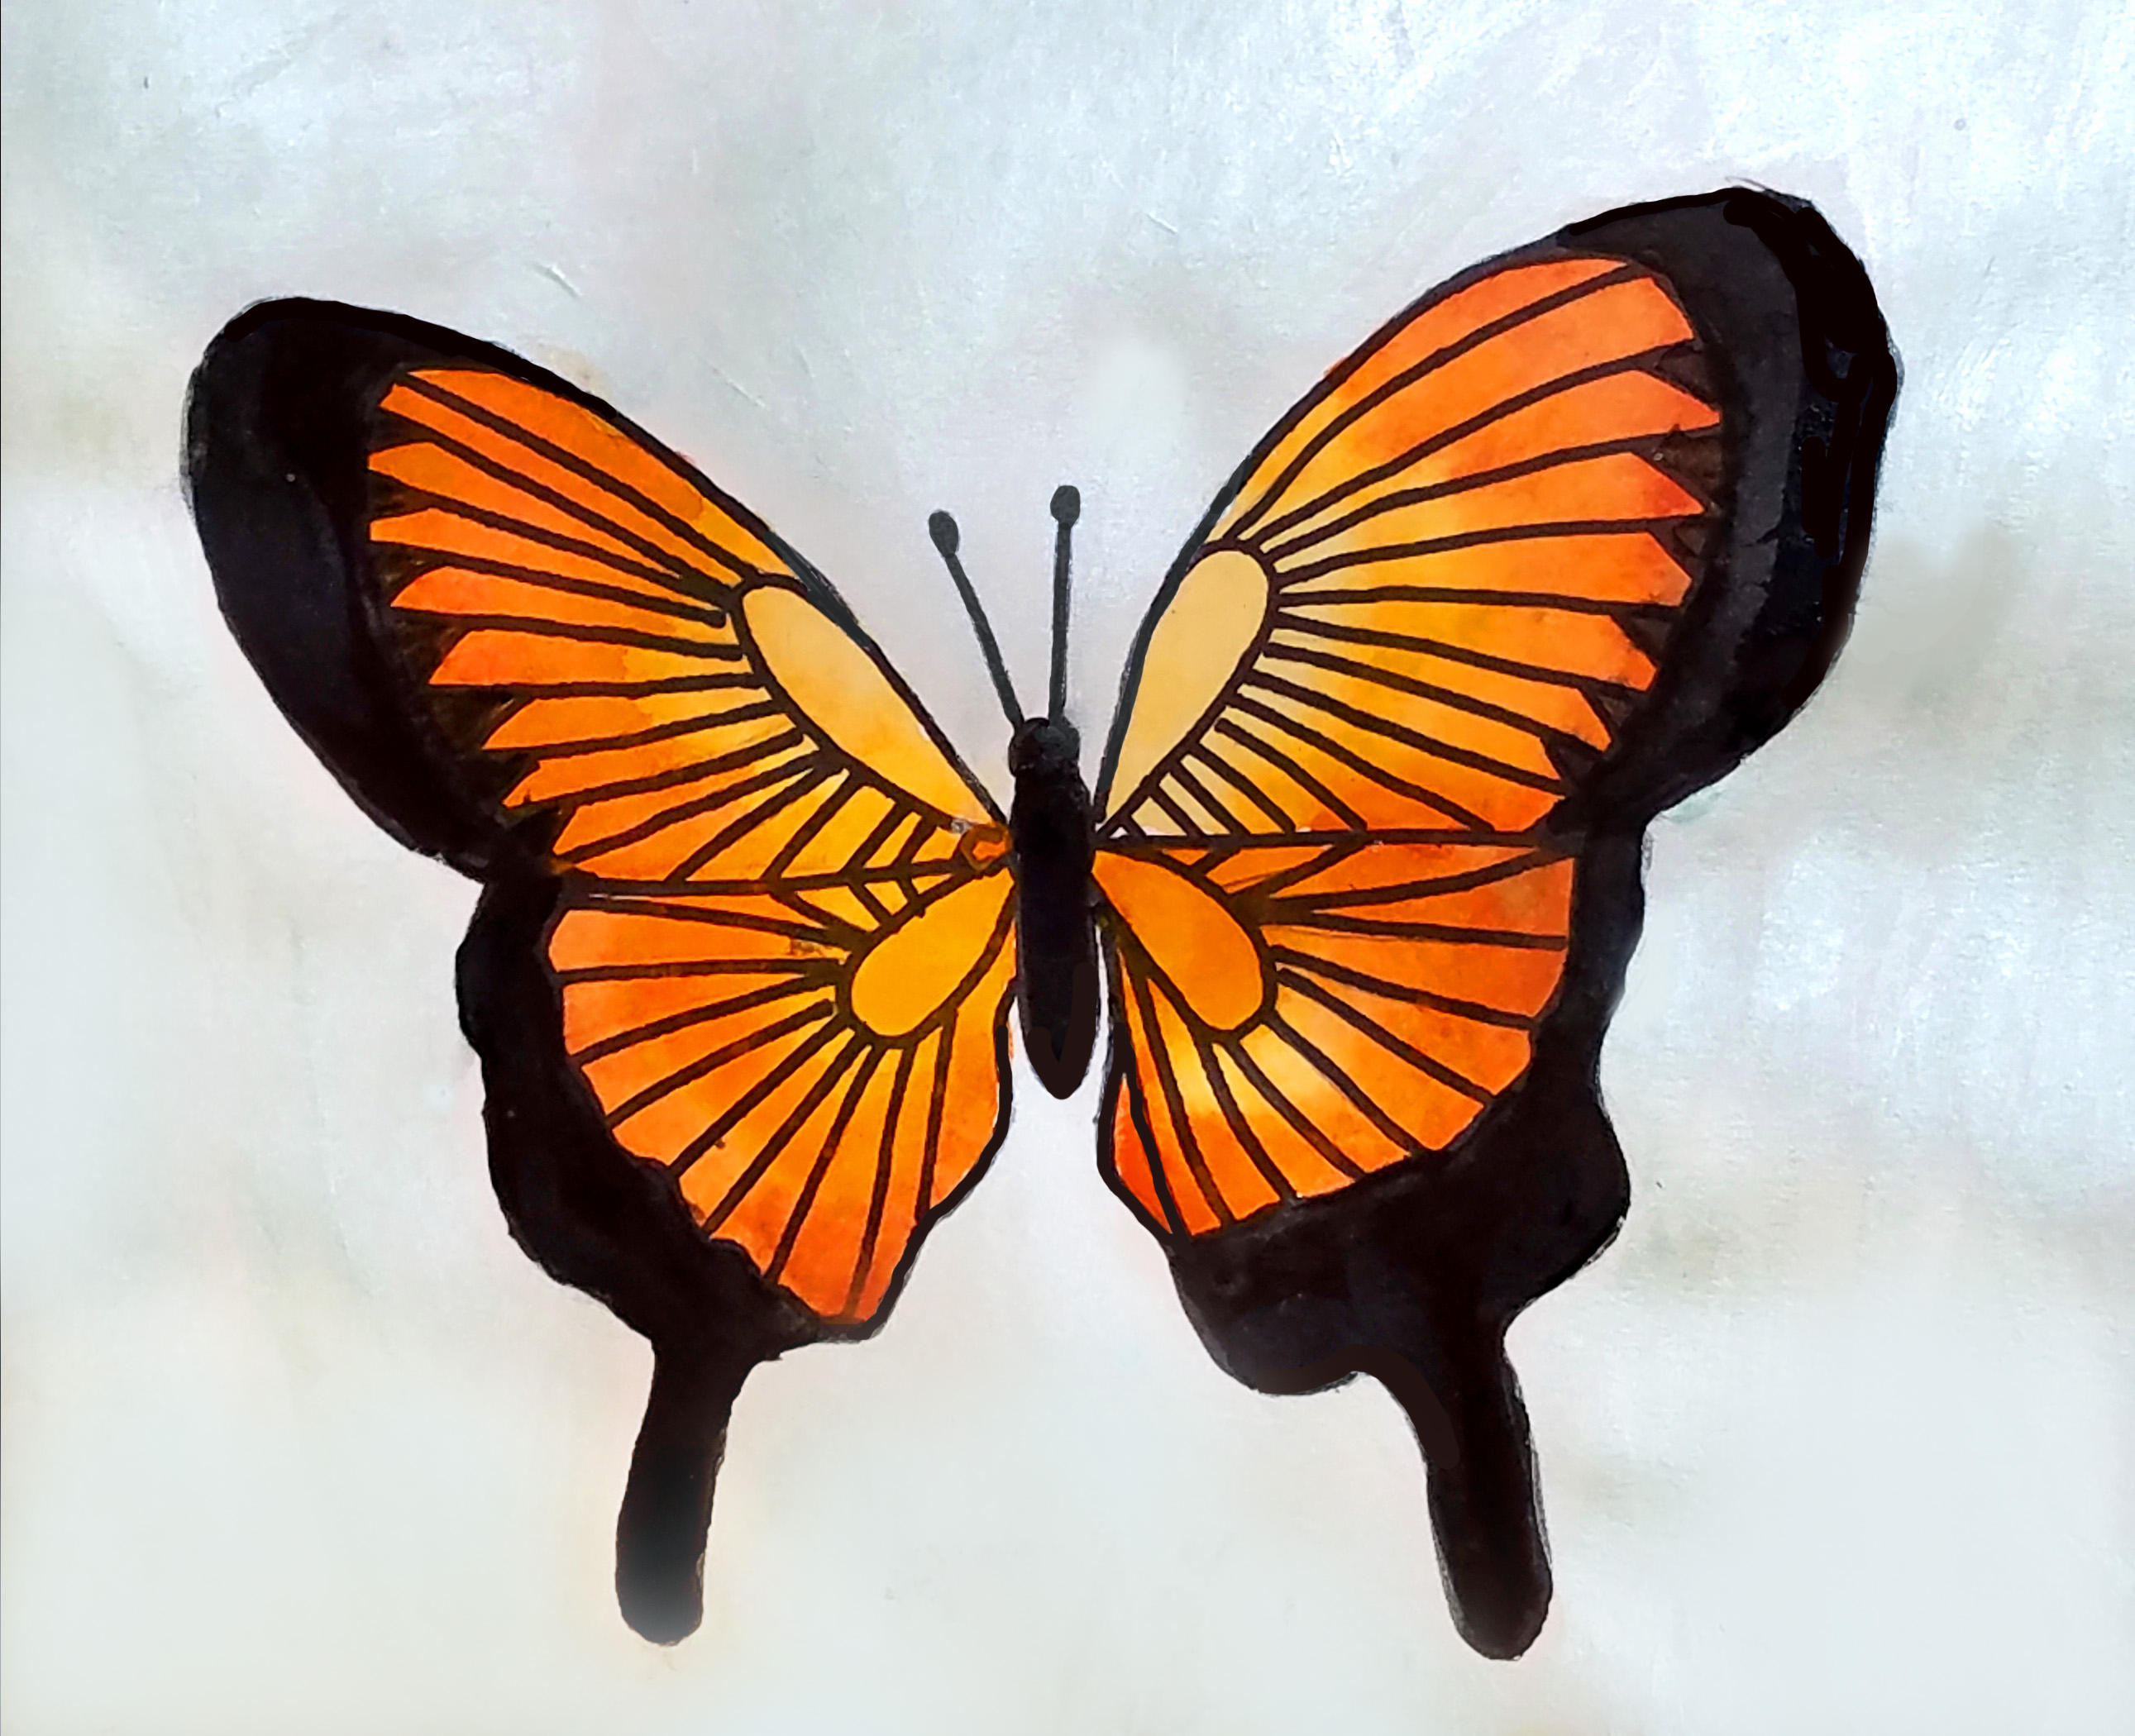 Start From The Body Of Butterfly While Watercolor Is Still Wet Use A Darker Shade Same Color To Make Gradient On Wings